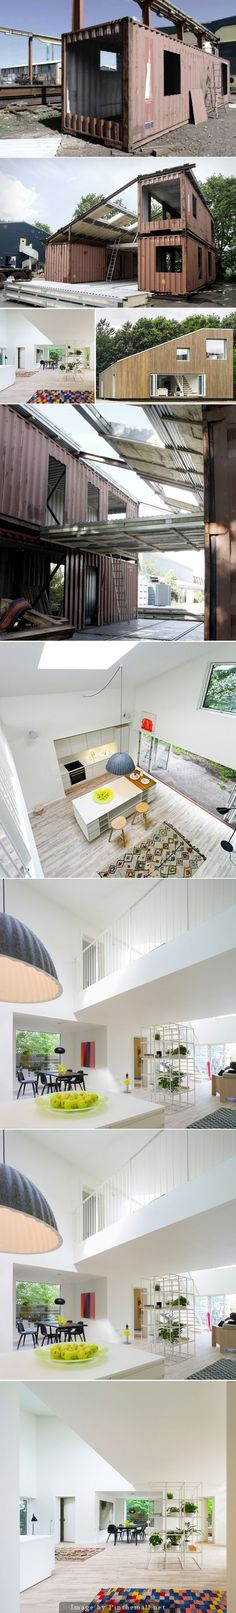 (이렇게 골격을잡고 시작해보면?) Upcycled Shipping Container House - Find out how to create one here http://howtobuildashippingcontainerhome.blogspot.com/